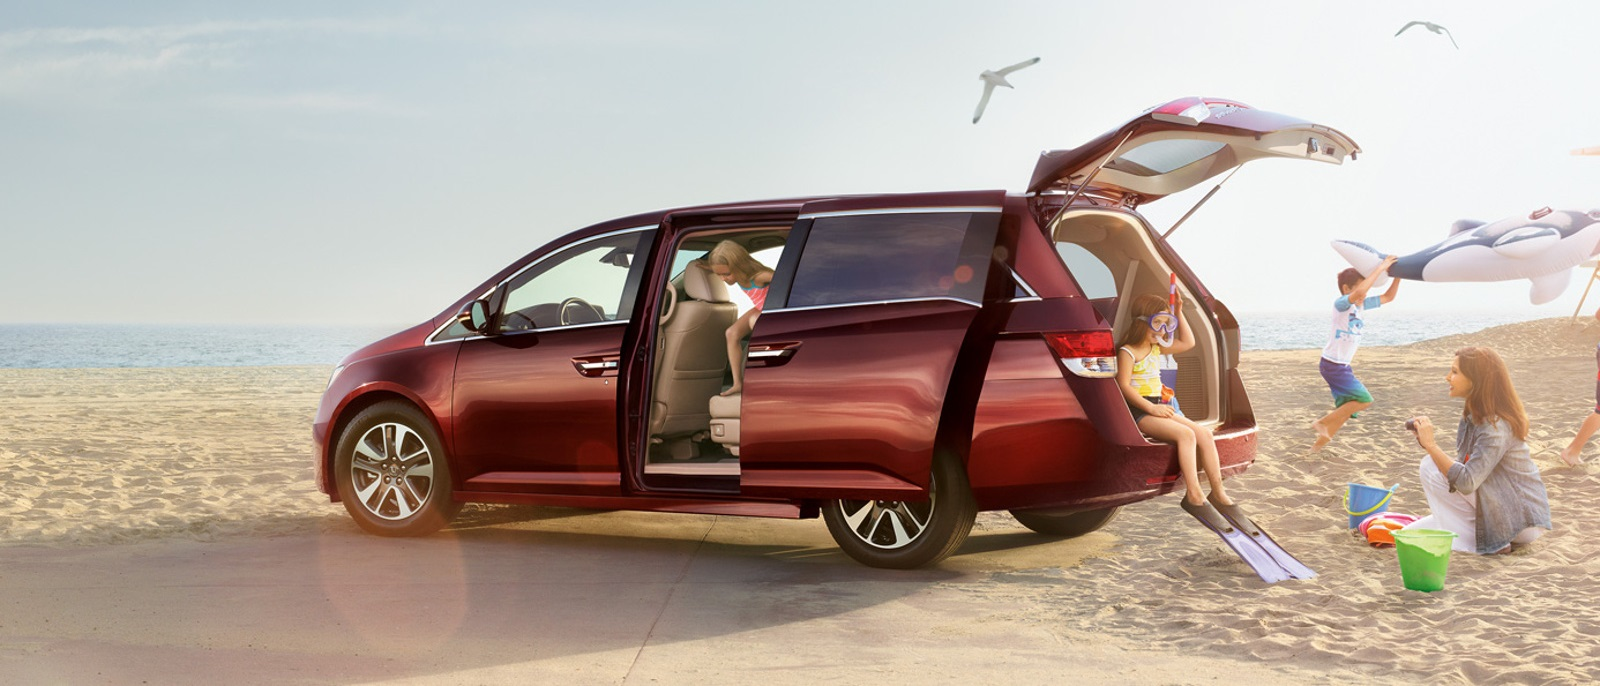 2016 Honda Odyssey on the beach